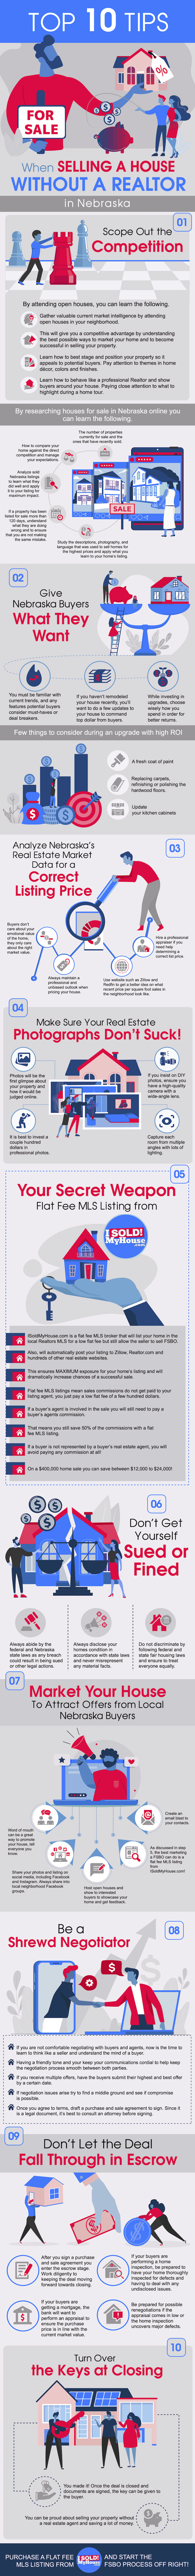 infographic of the 10 steps to sell a house in nebraska without an agent